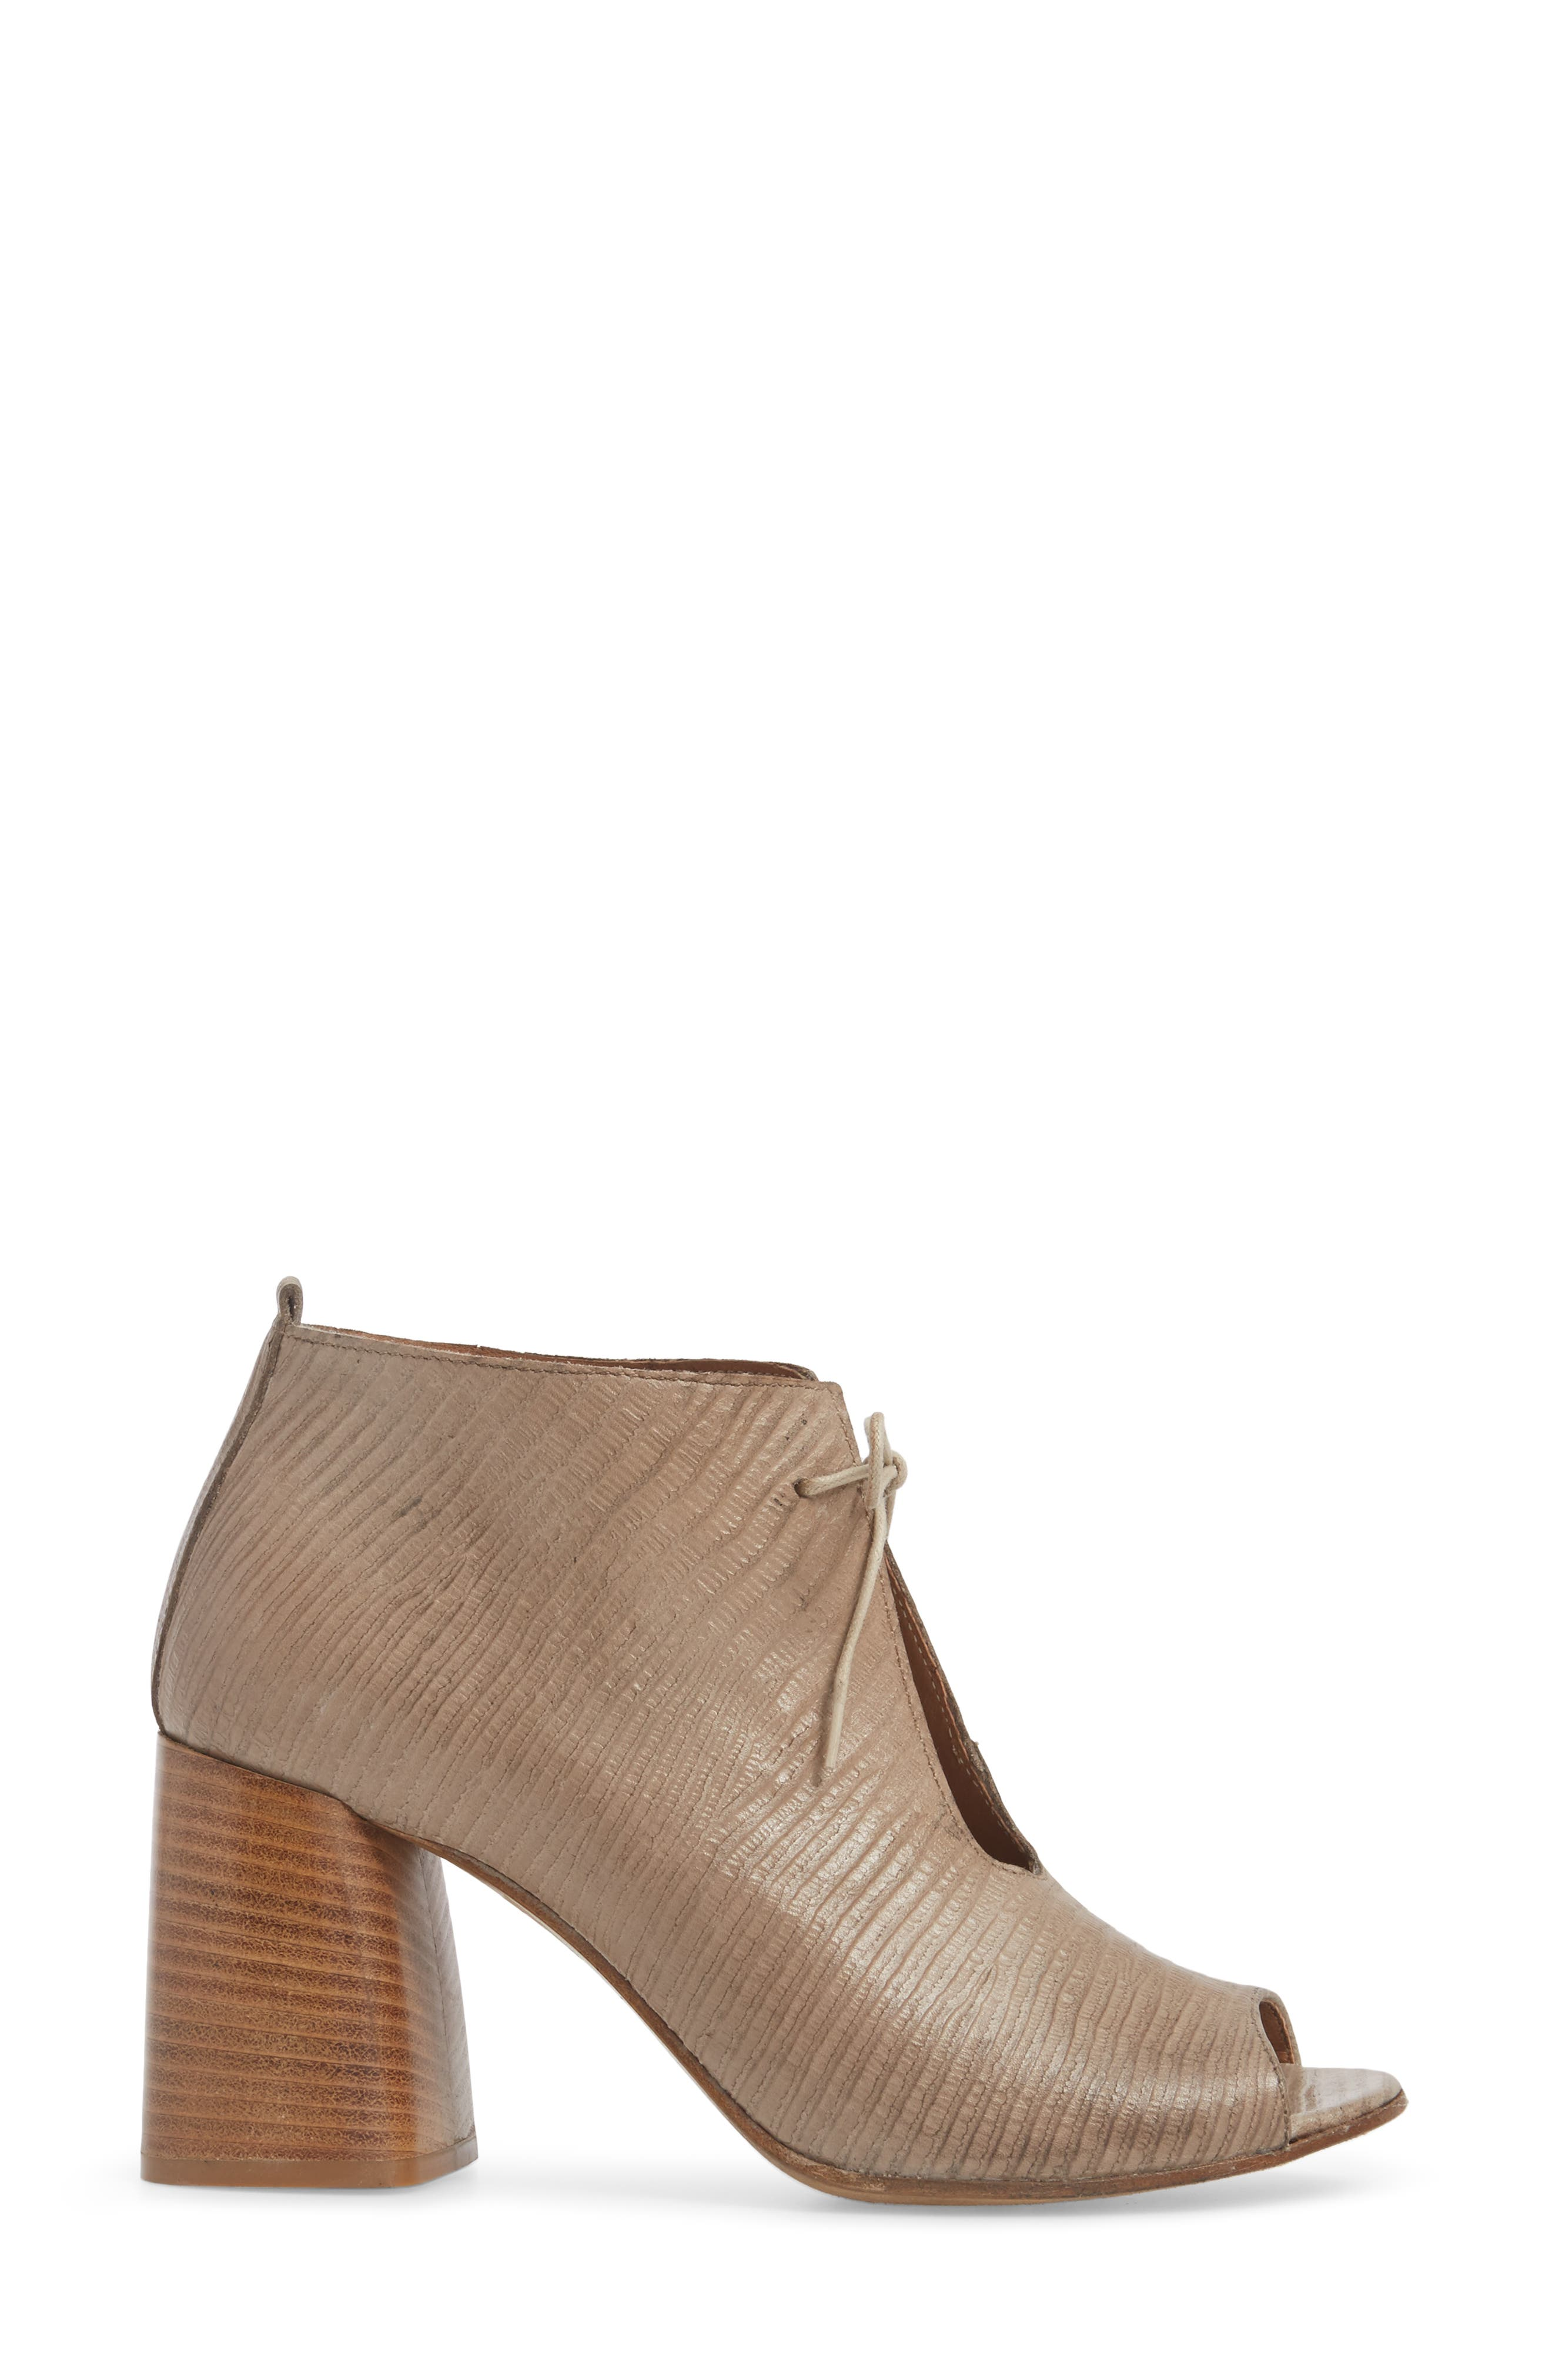 Lacey1 Bootie,                             Alternate thumbnail 3, color,                             Taupe Leather